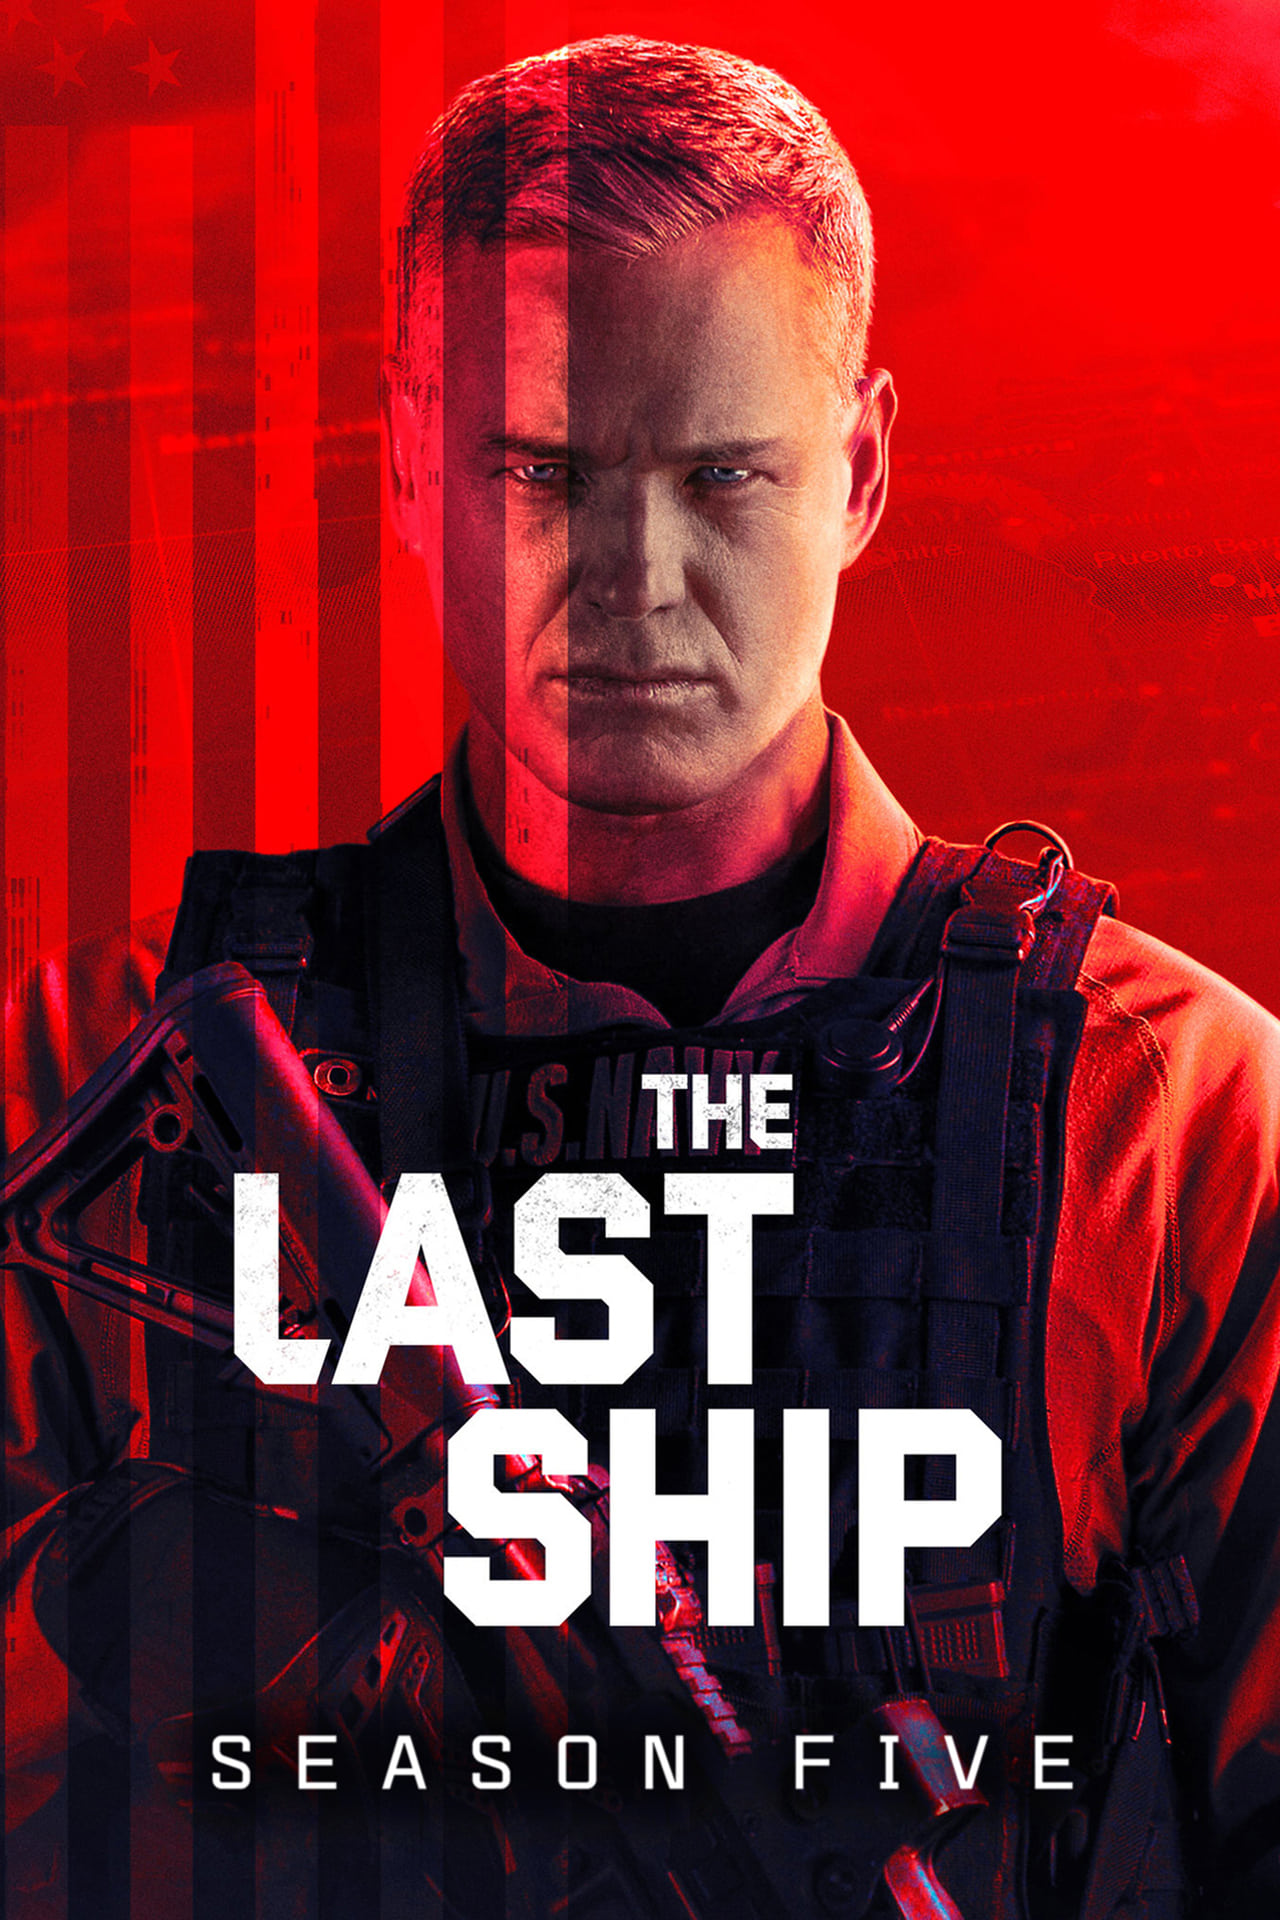 The Last Ship Season 5 (2018) putlockers cafe